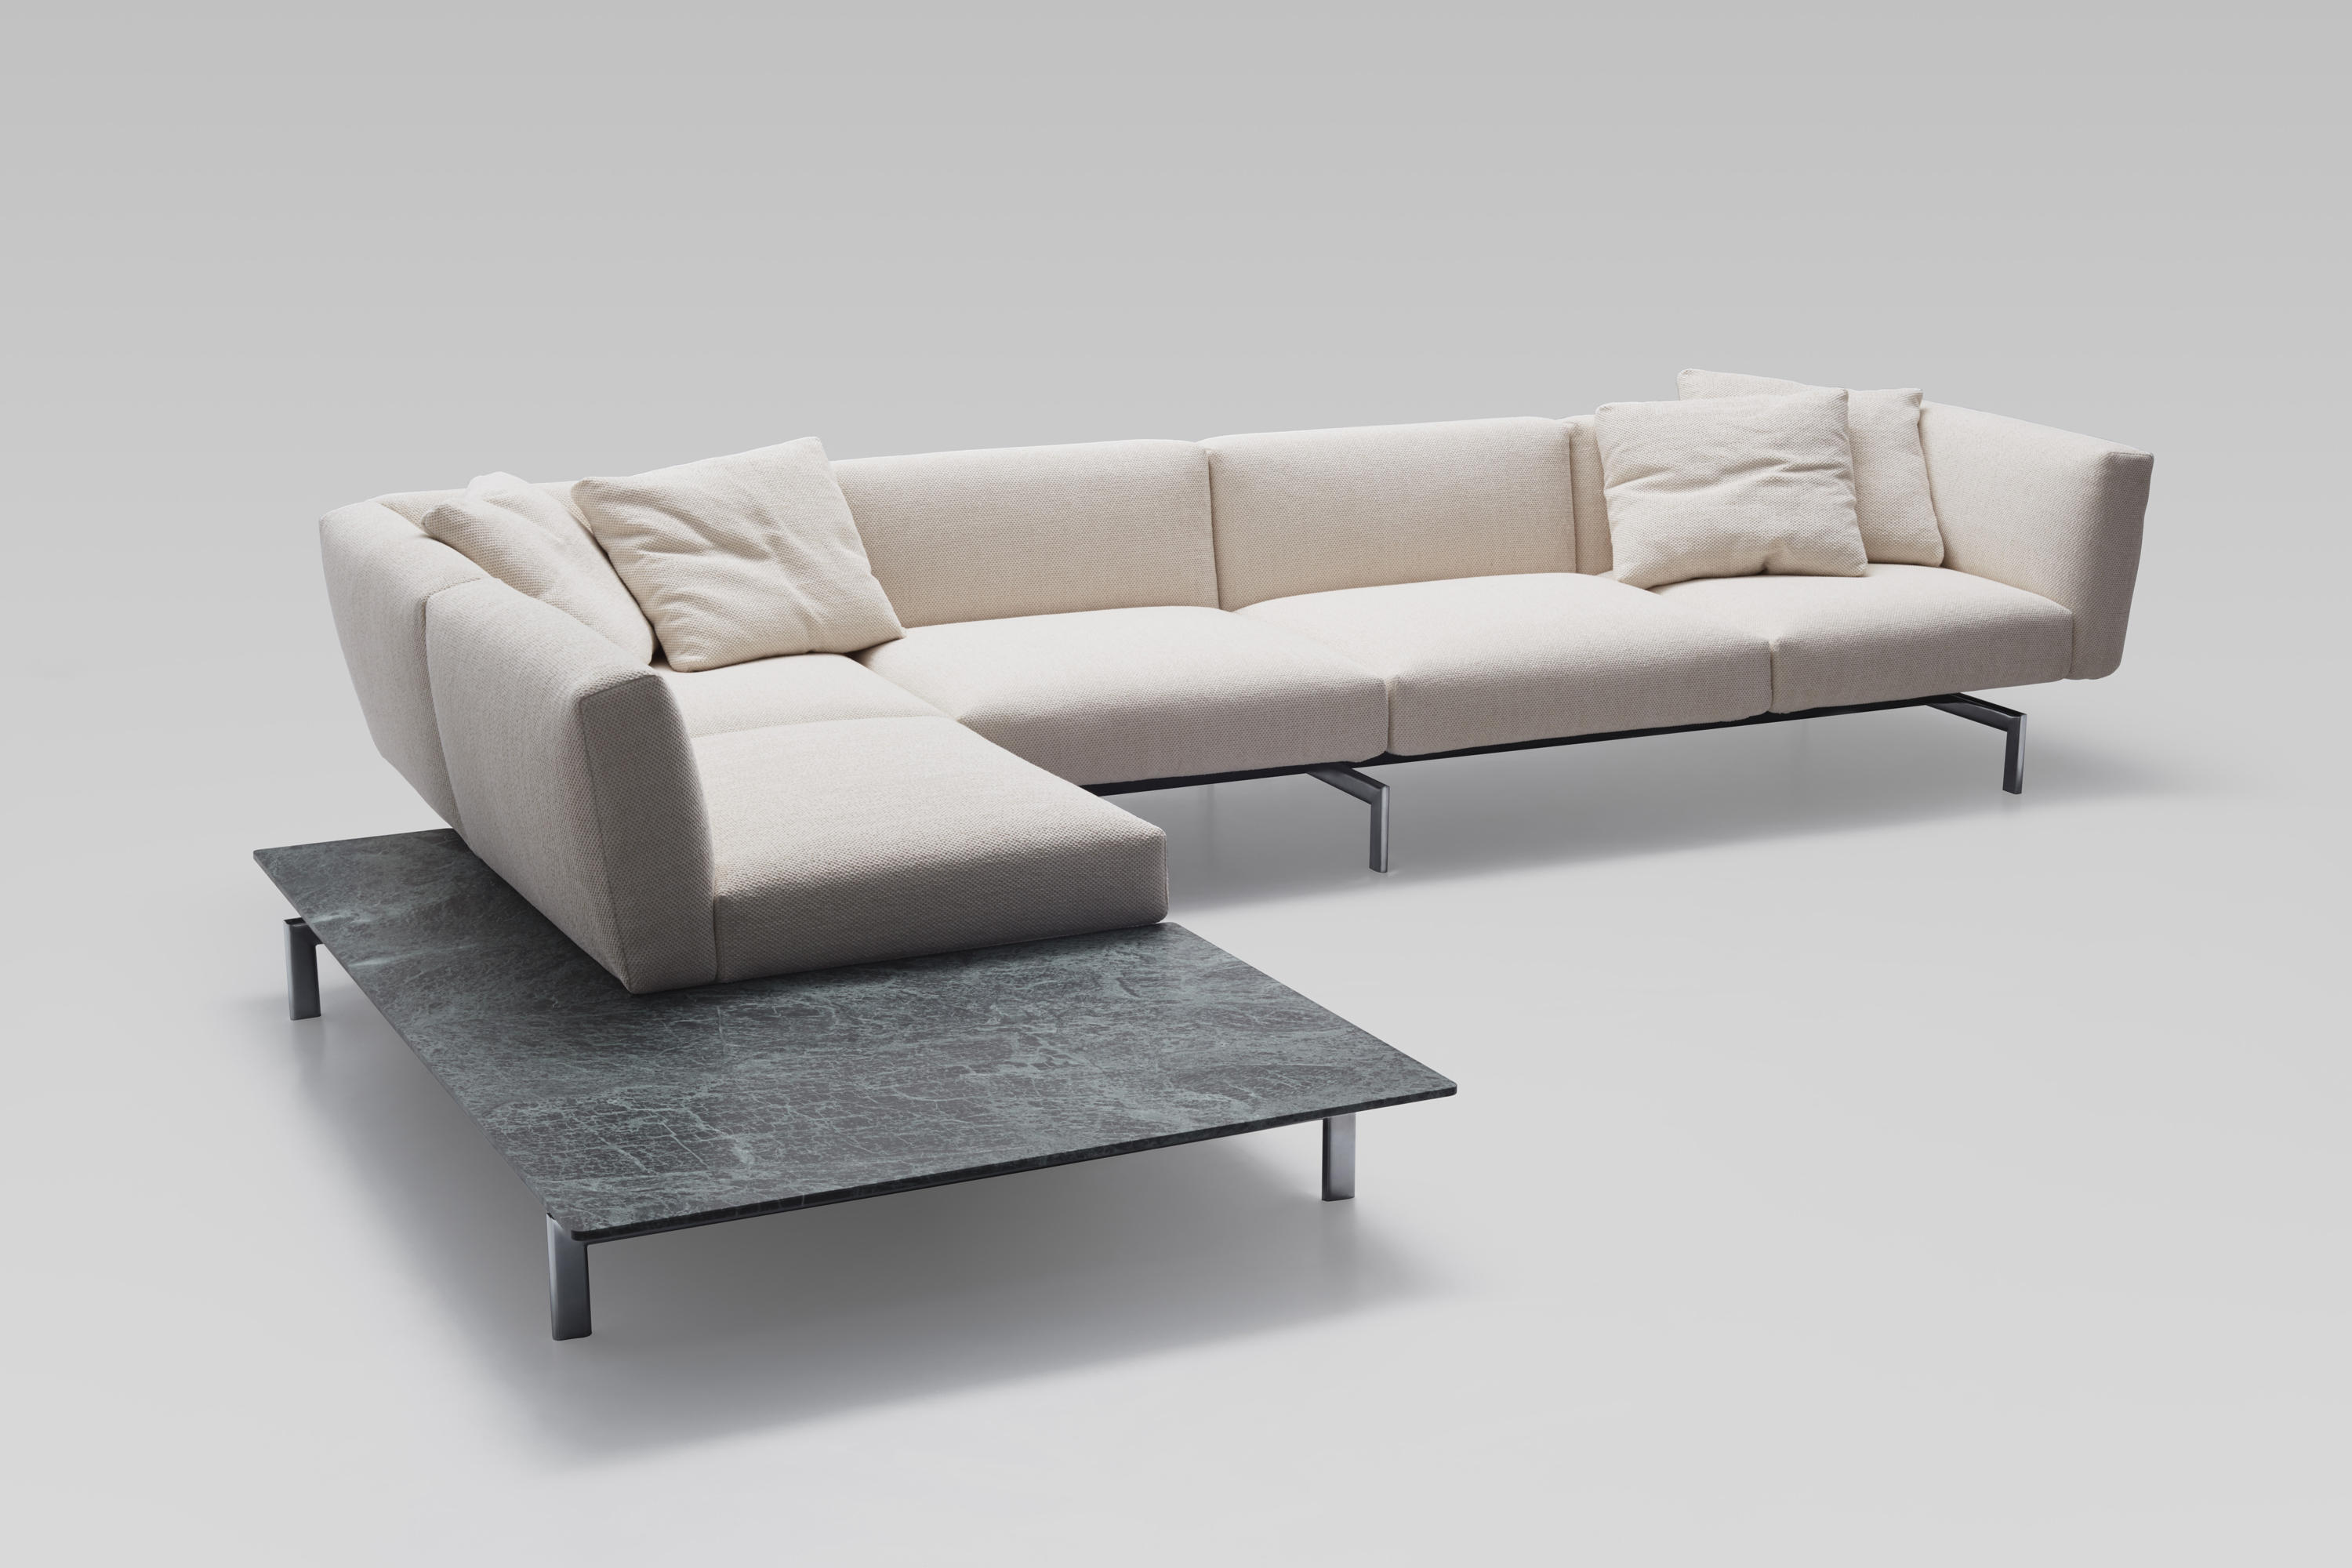 lissoni avio sofa system sofas from knoll international architonic. Black Bedroom Furniture Sets. Home Design Ideas